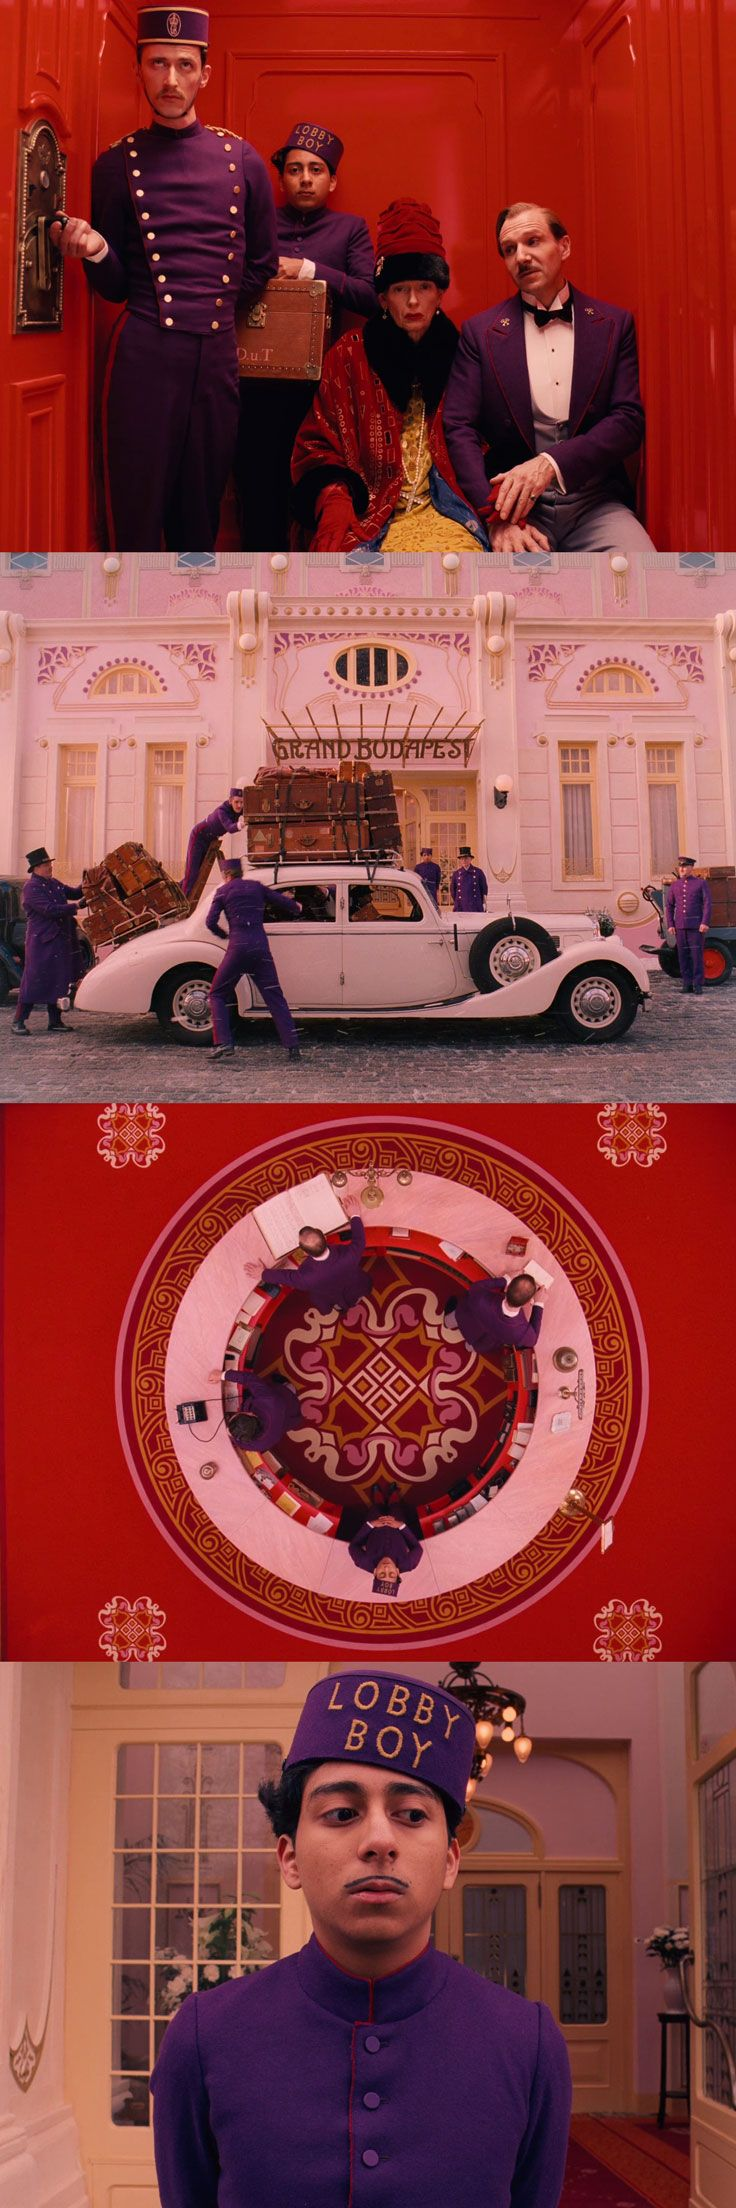 best ideas about hotel budapest grand budapest bold use of pink purple and red tones in the grand budapest hotel i